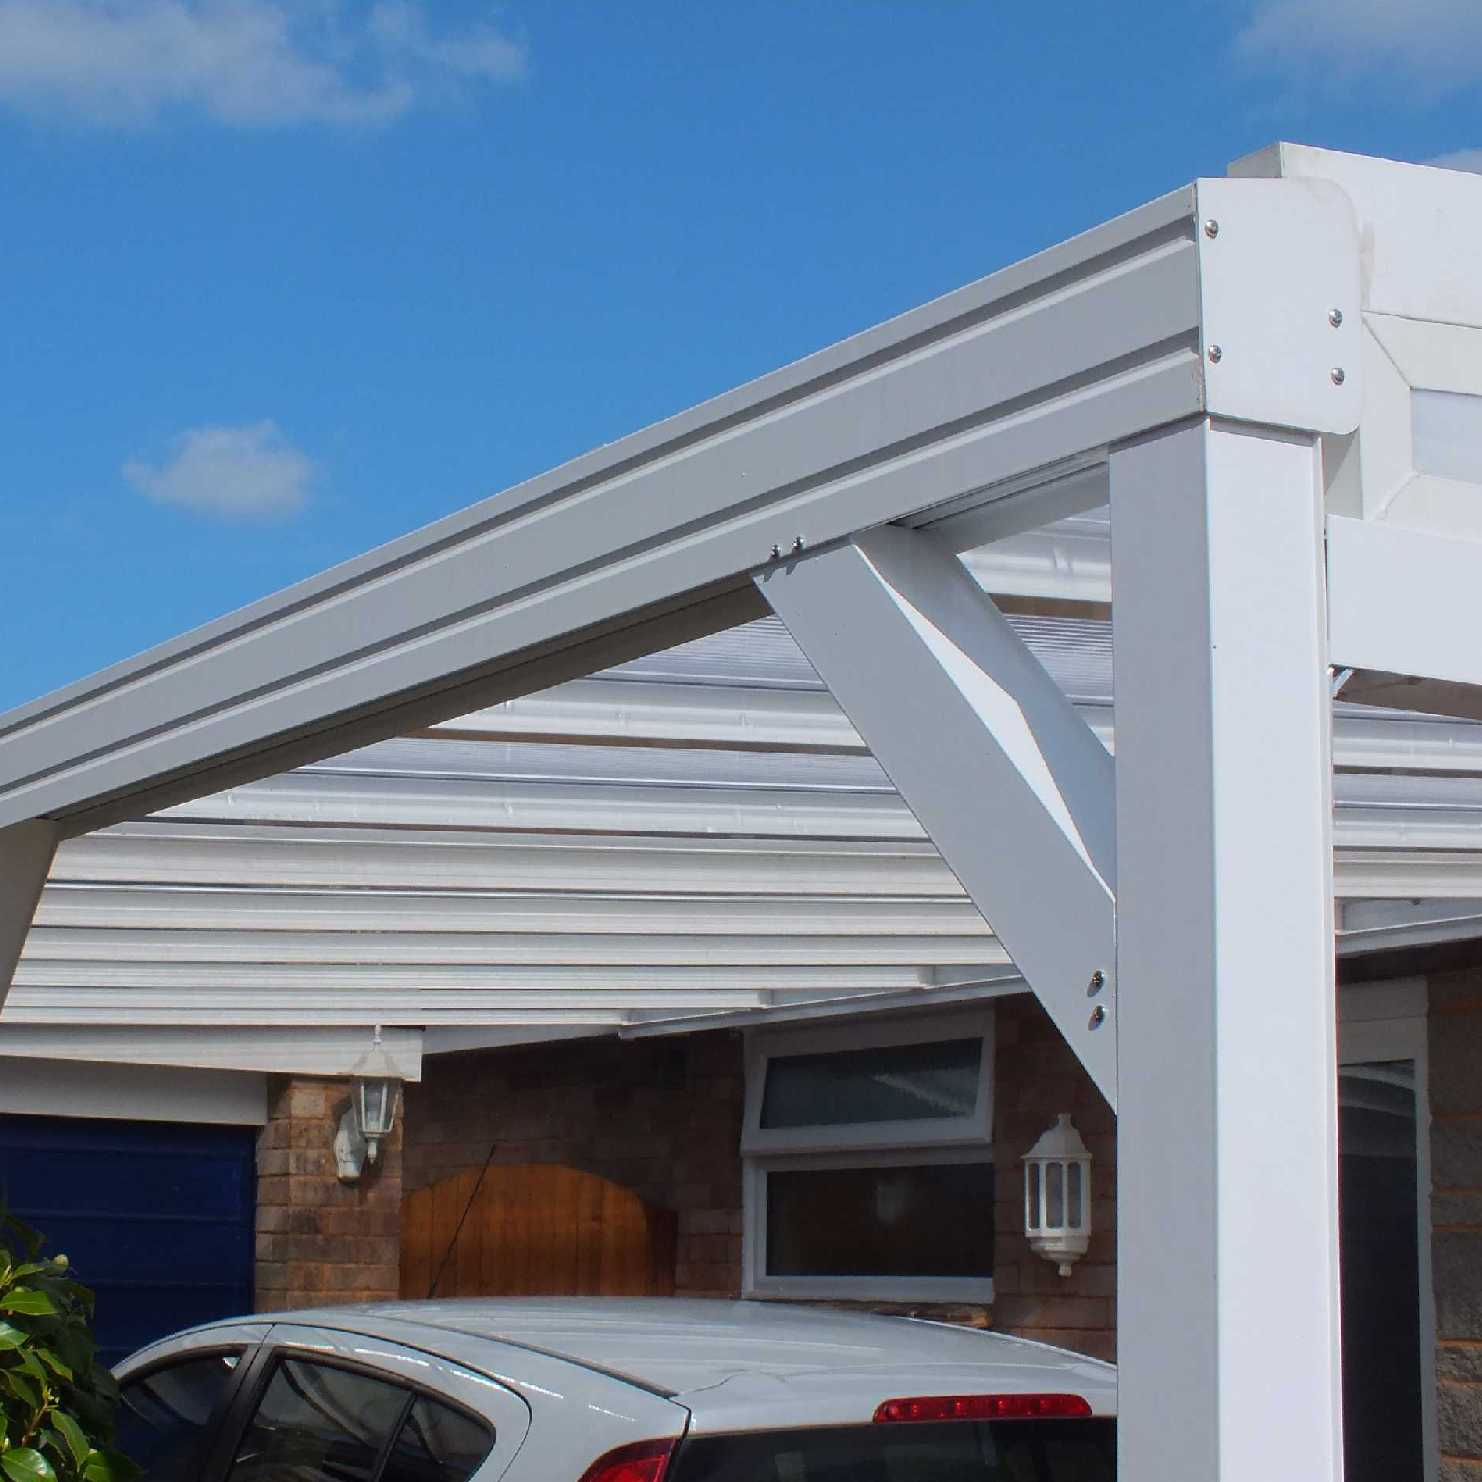 Great deals on Omega Smart White Lean-To Canopy with 16mm Polycarbonate Glazing - 2.1m (W) x 4.0m (P), (2) Supporting Posts